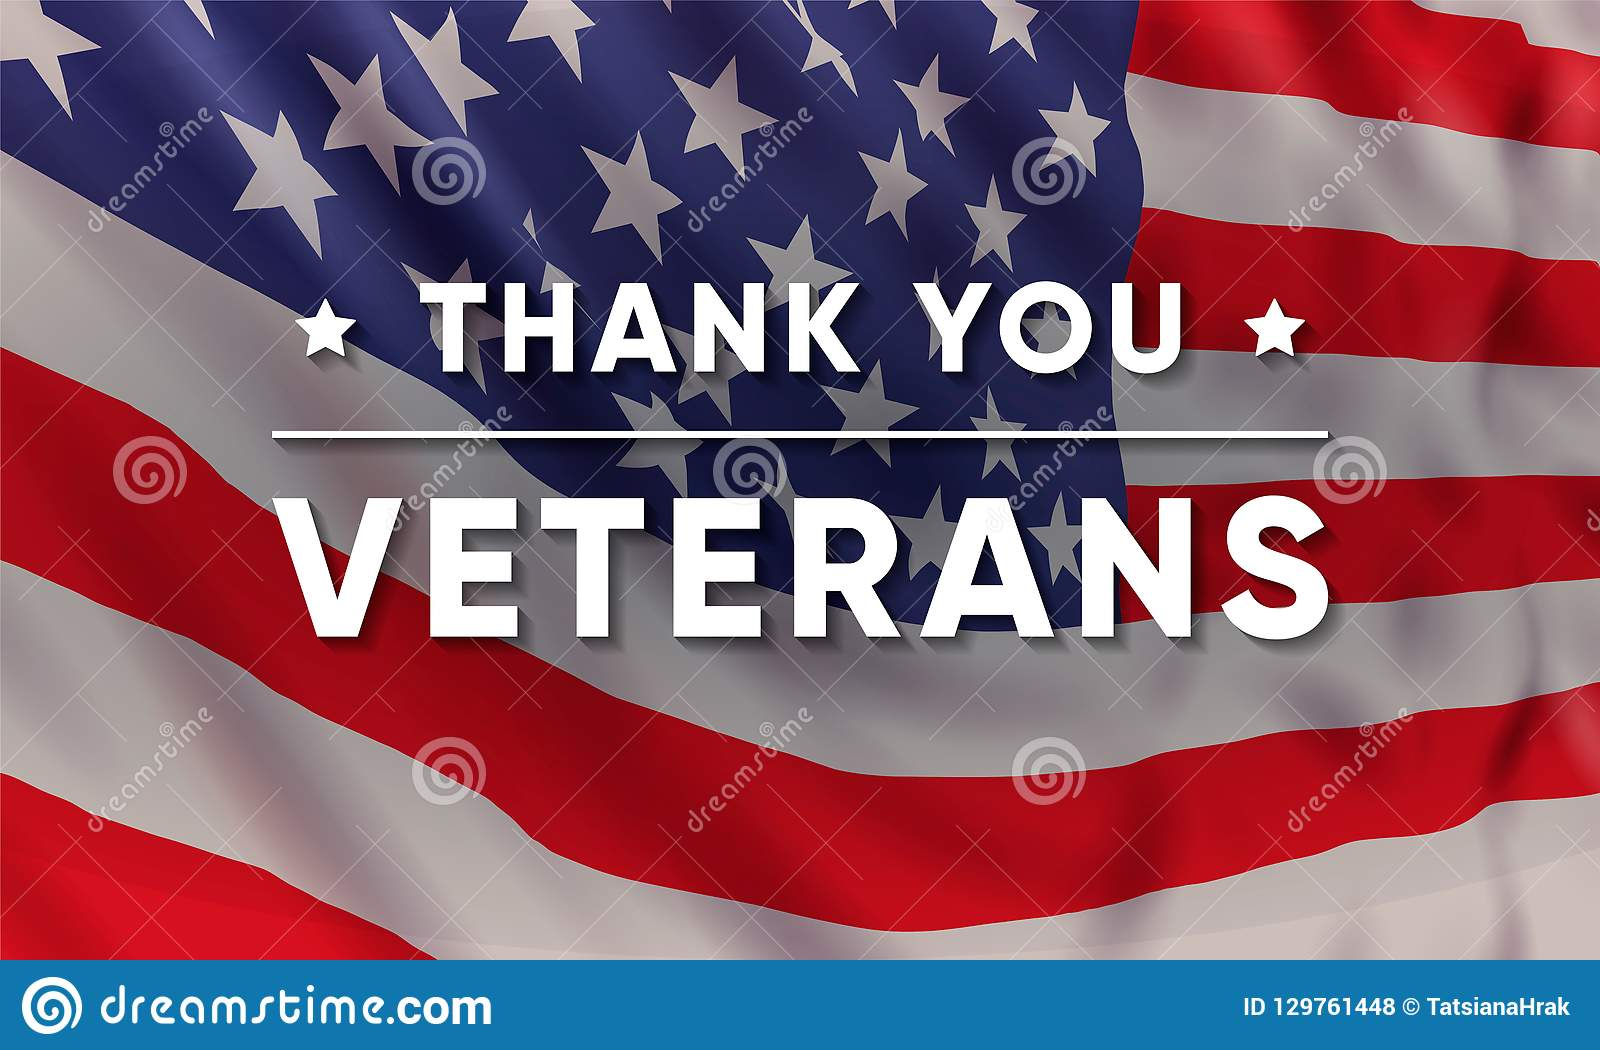 Buy Veterans you Thank banner pictures pictures trends